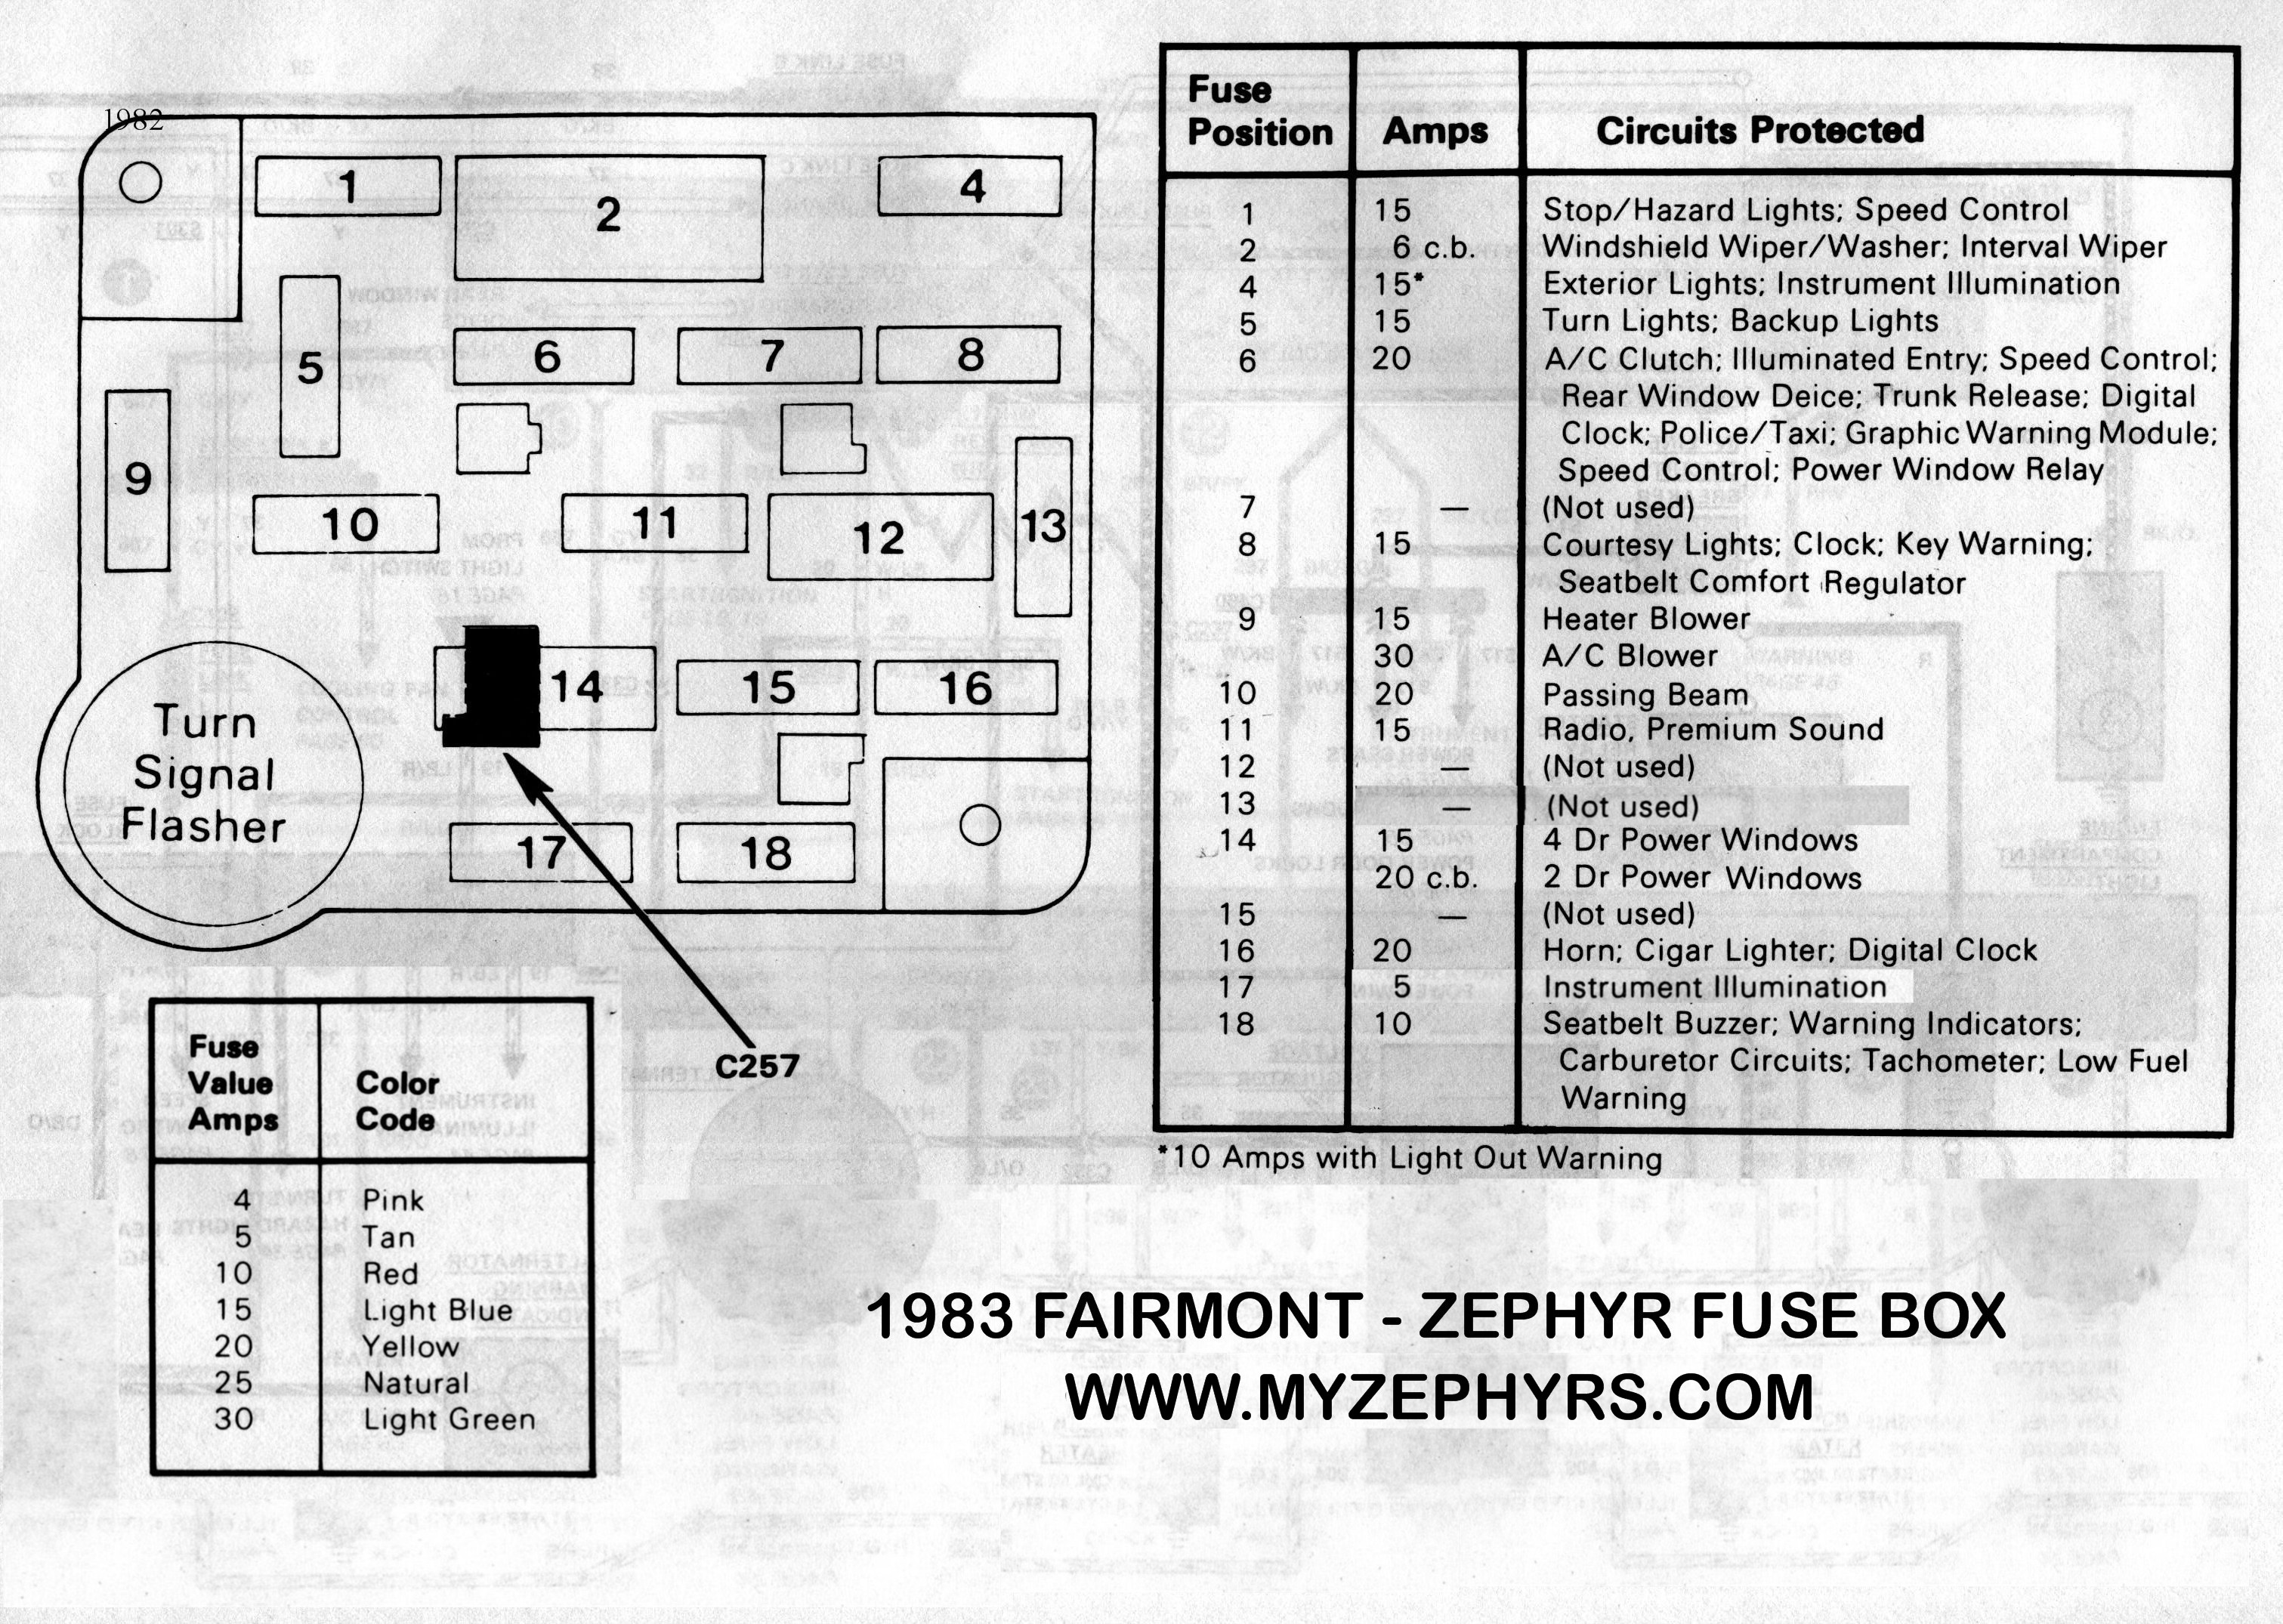 83 mustang fuse box location example electrical wiring diagram u2022 rh huntervalleyhotels co 99 Mustang Fuse Box Diagram 05 Mustang Fuse Box Diagram